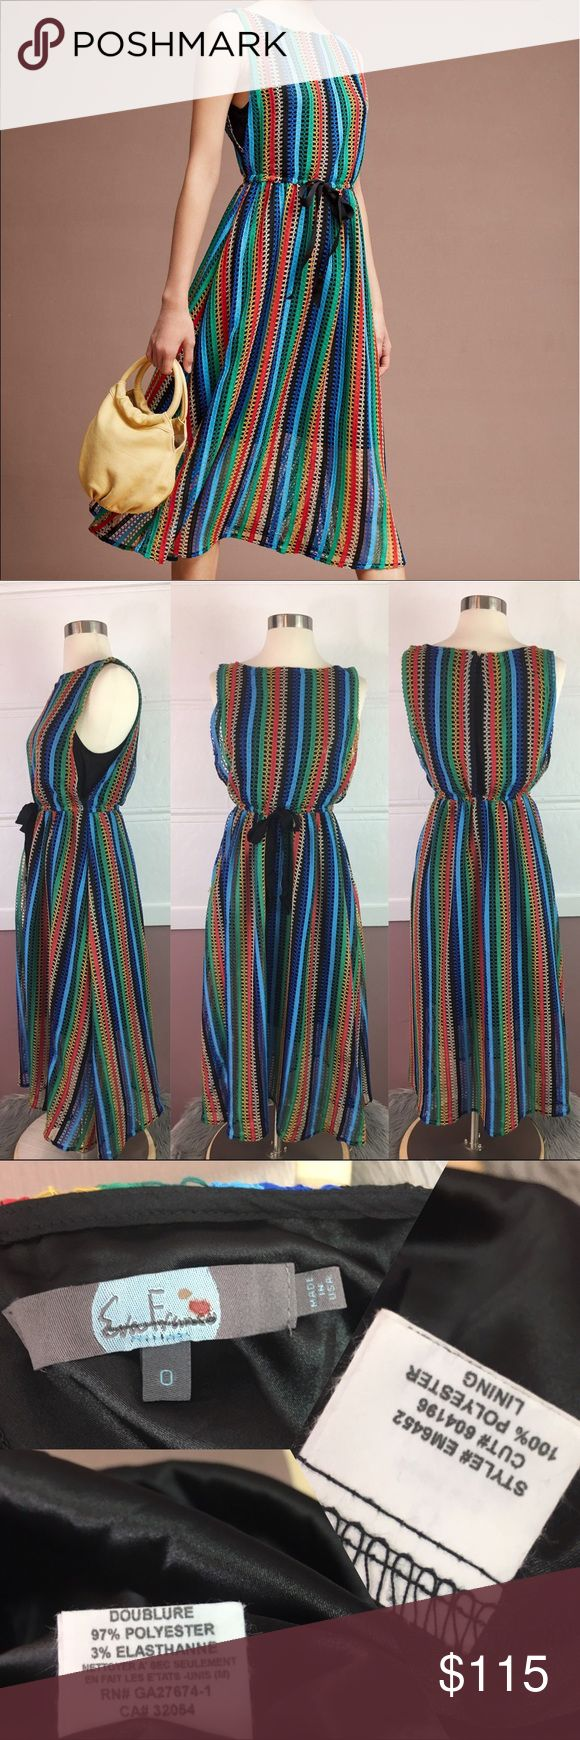 NEW Eva Franco Rainbow Crochet Midi Dress Brand new never worn. Brand marked to prevent in store returns. Sold at Anthropologie. A few loose strings pictured Anthropologie Dresses Midi